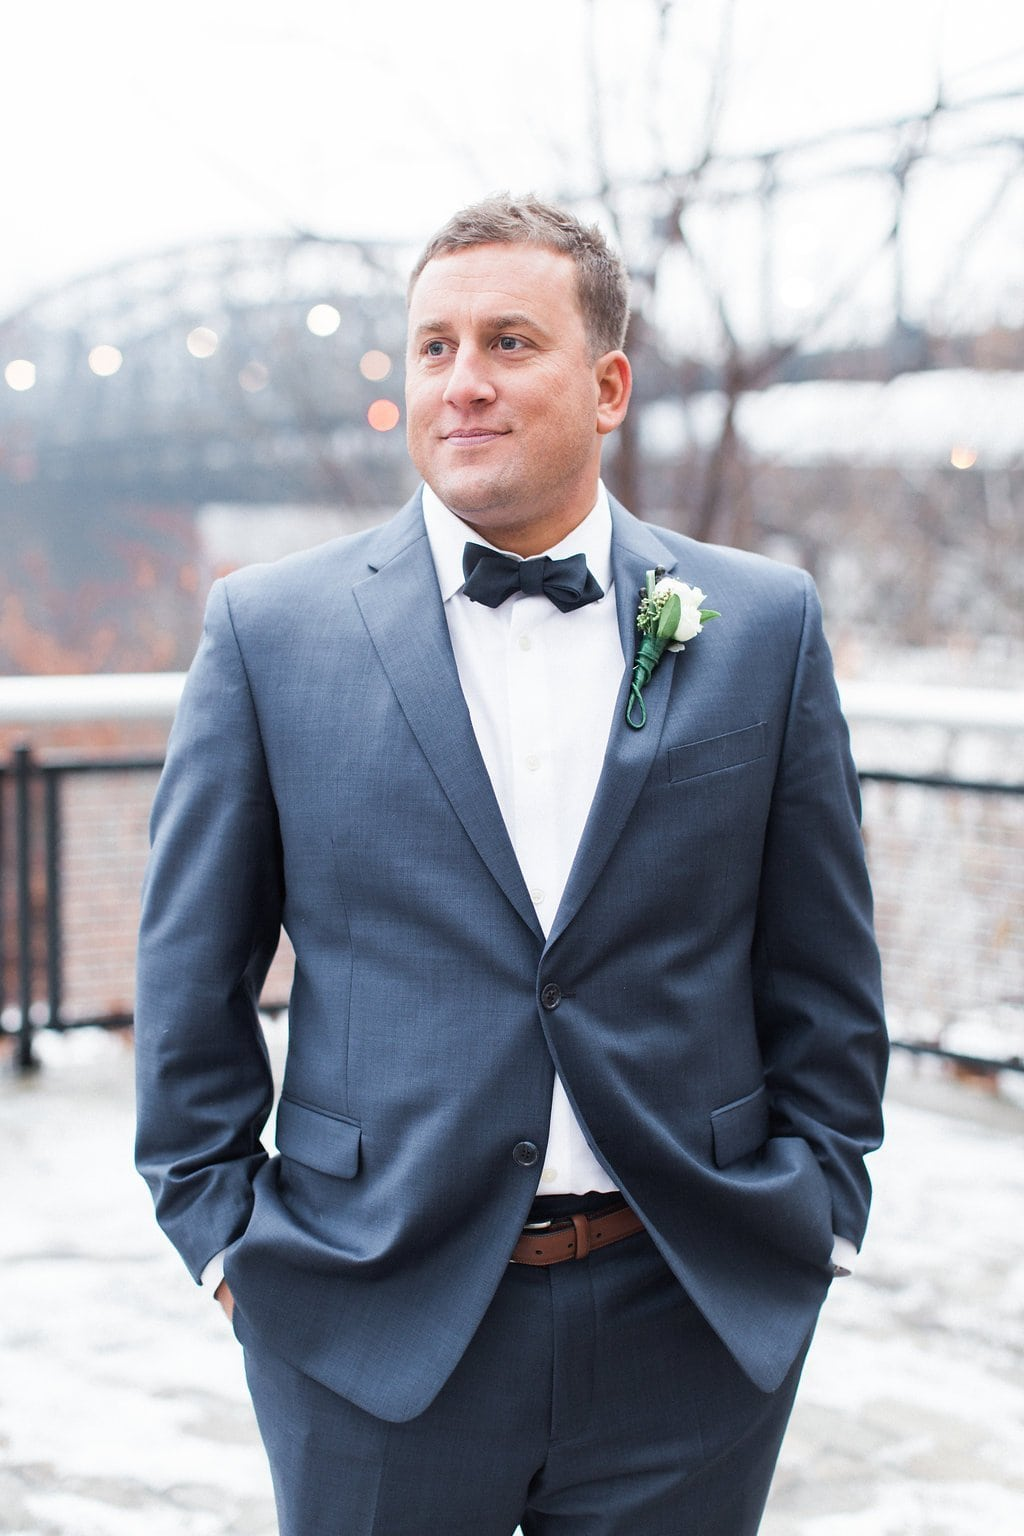 Portrait of the groom outside in the snow